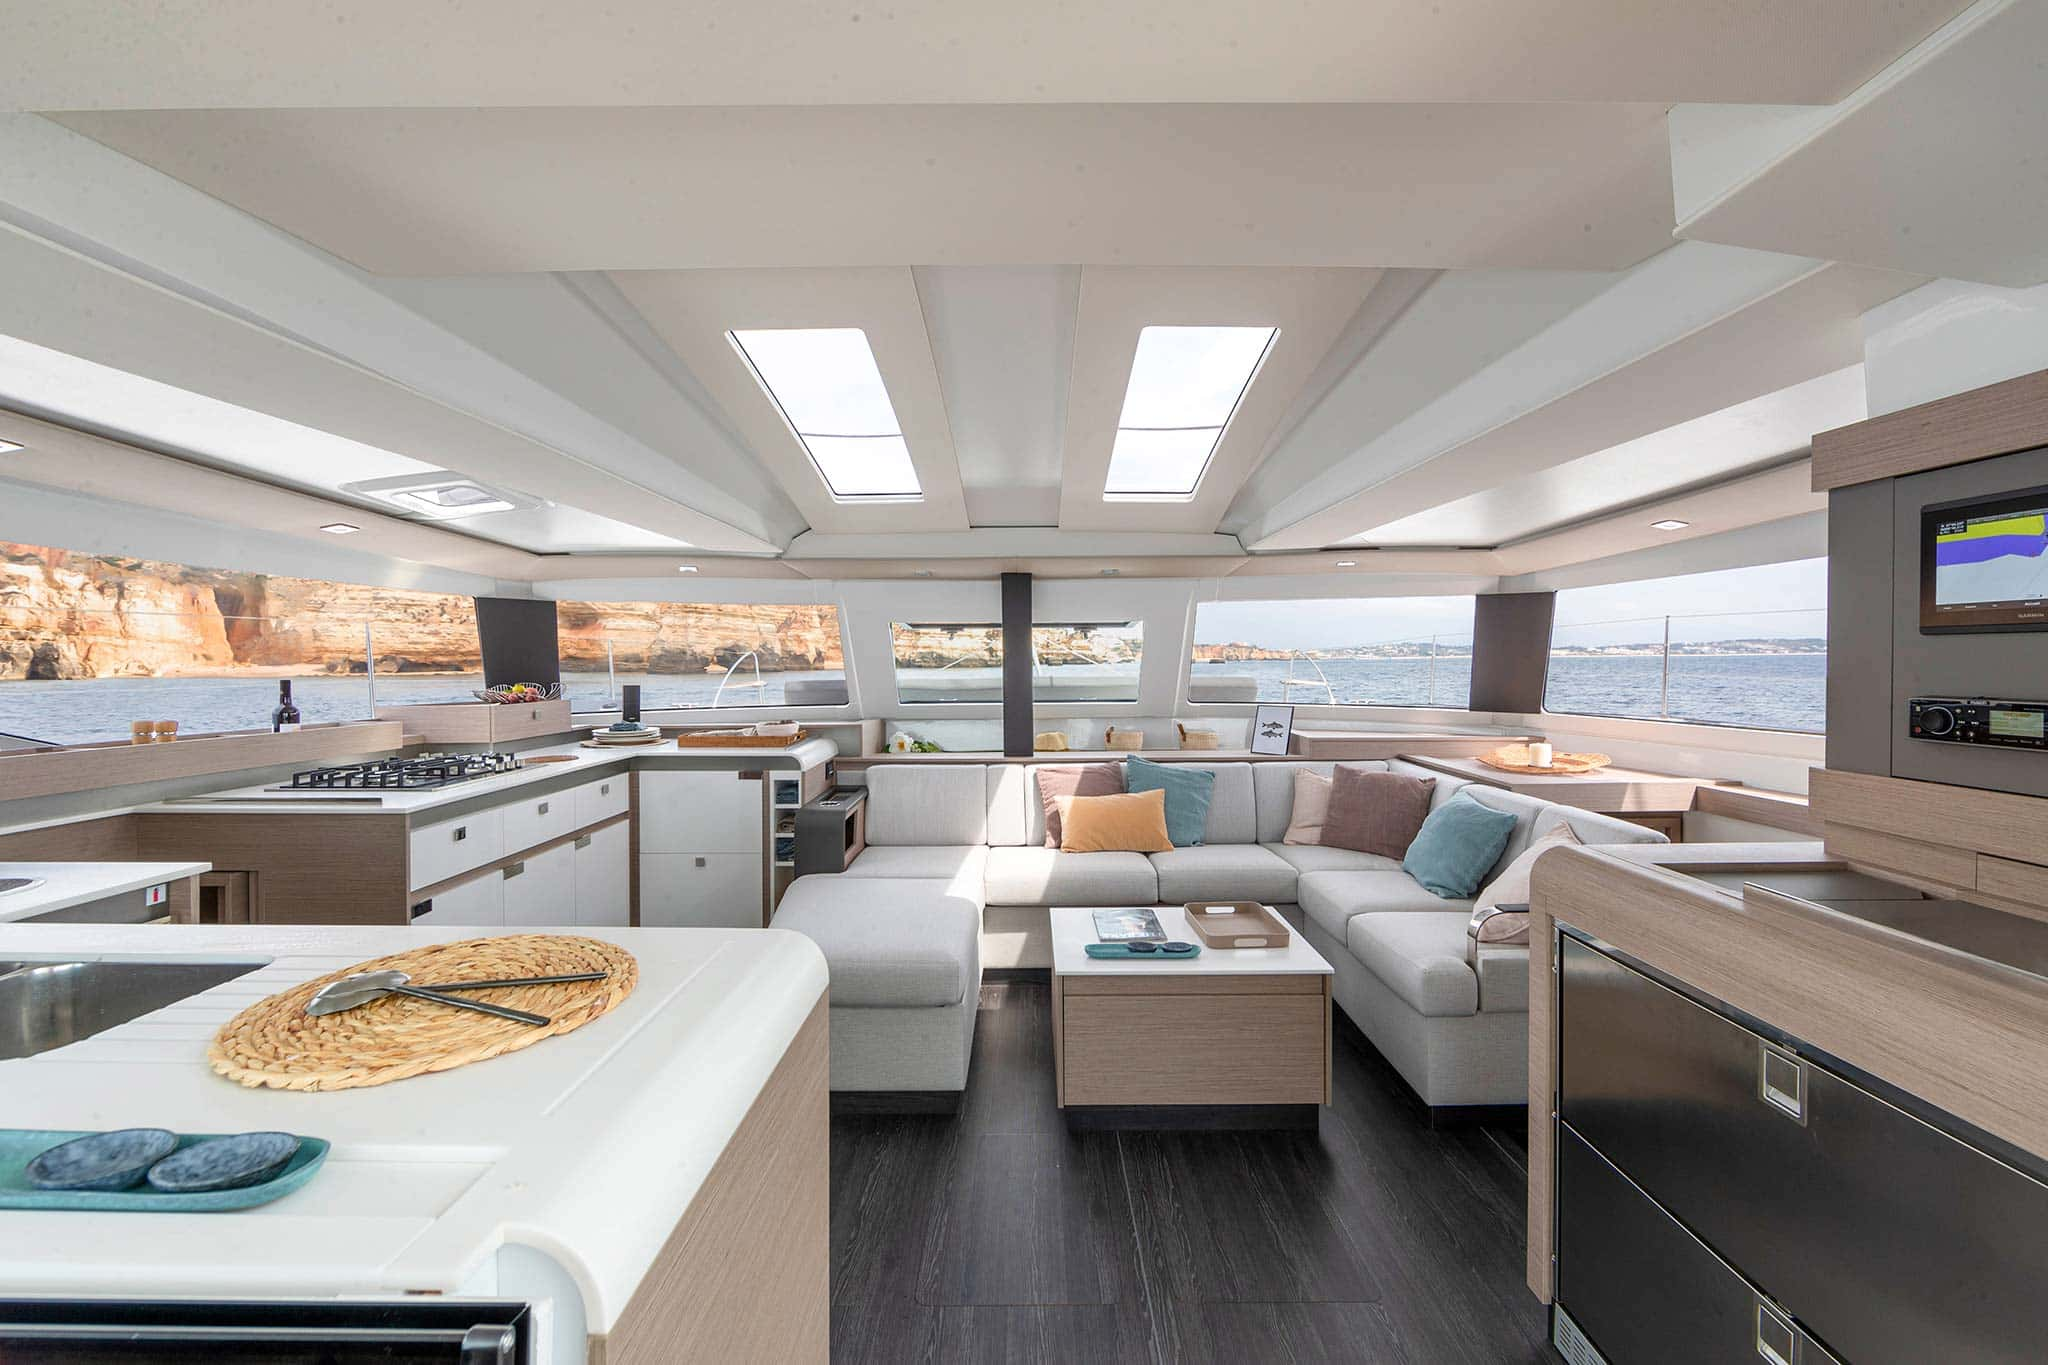 Seating and kitchen area of a commissioned yacht